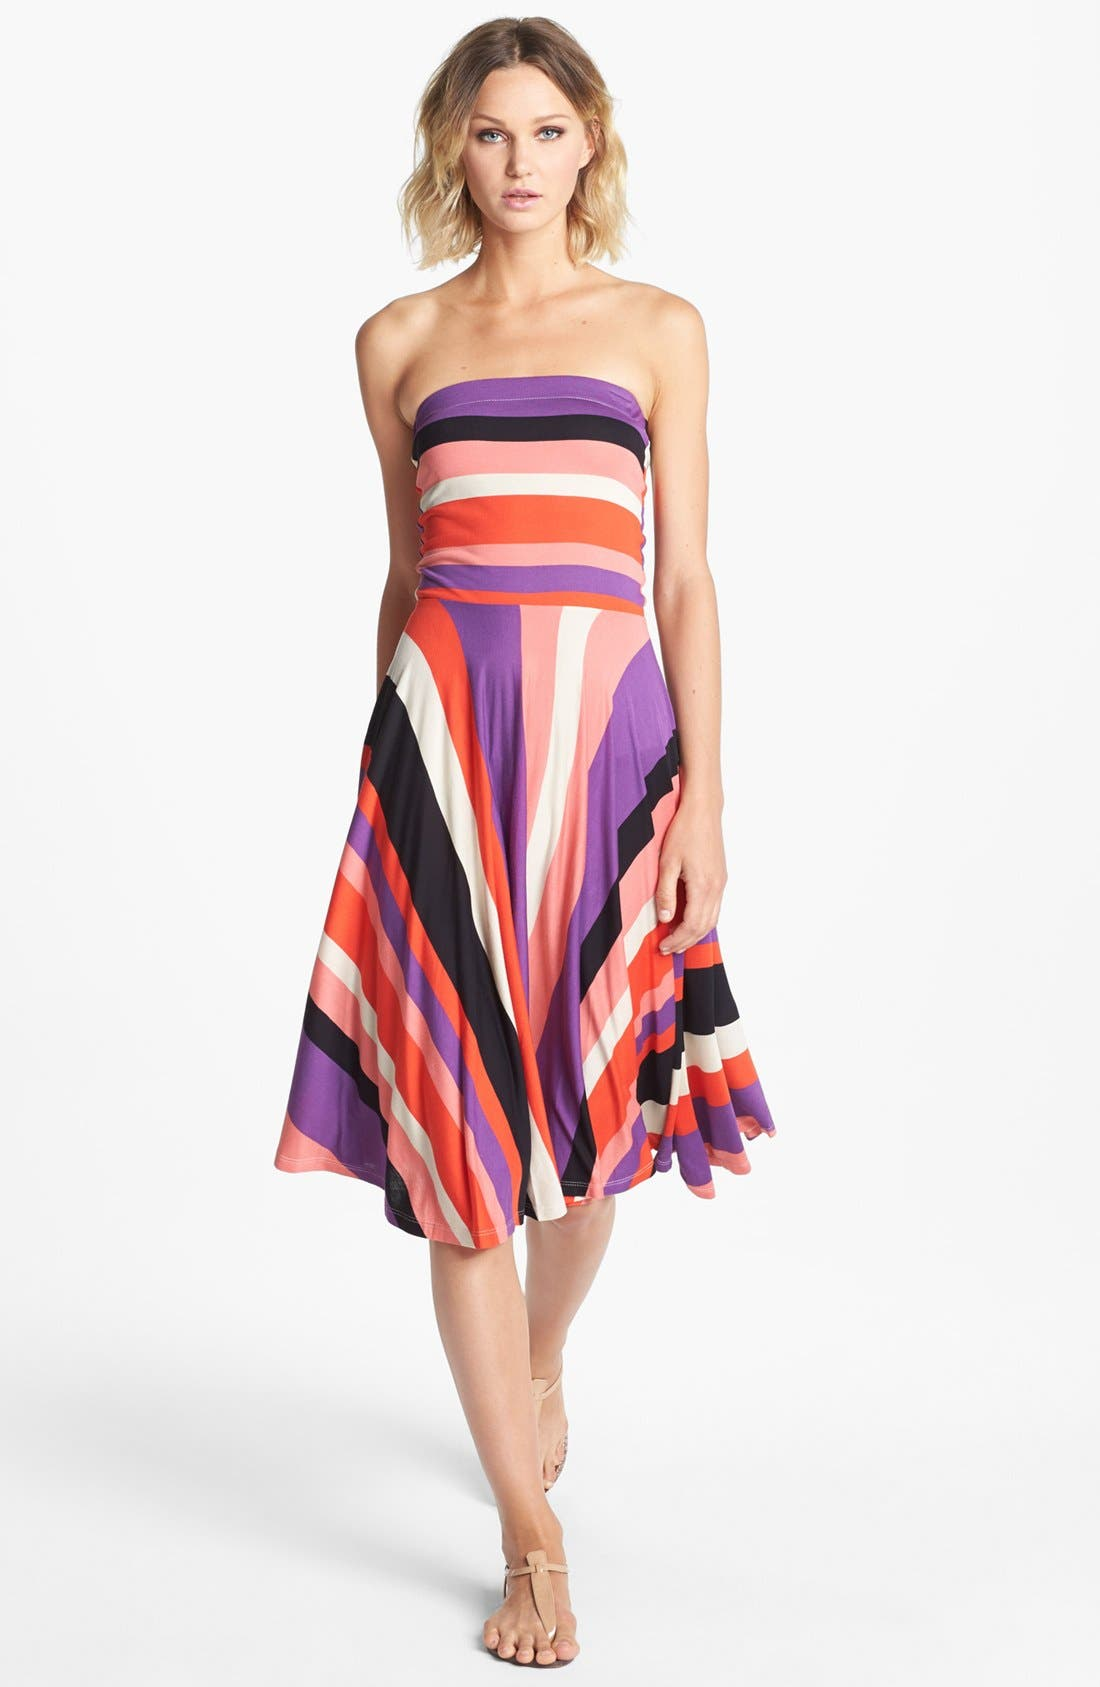 Alternate Image 1 Selected - Felicity & Coco 'Miliani' Strapless Stripe Fit & Flare Dress (Nordstrom Exclusive)